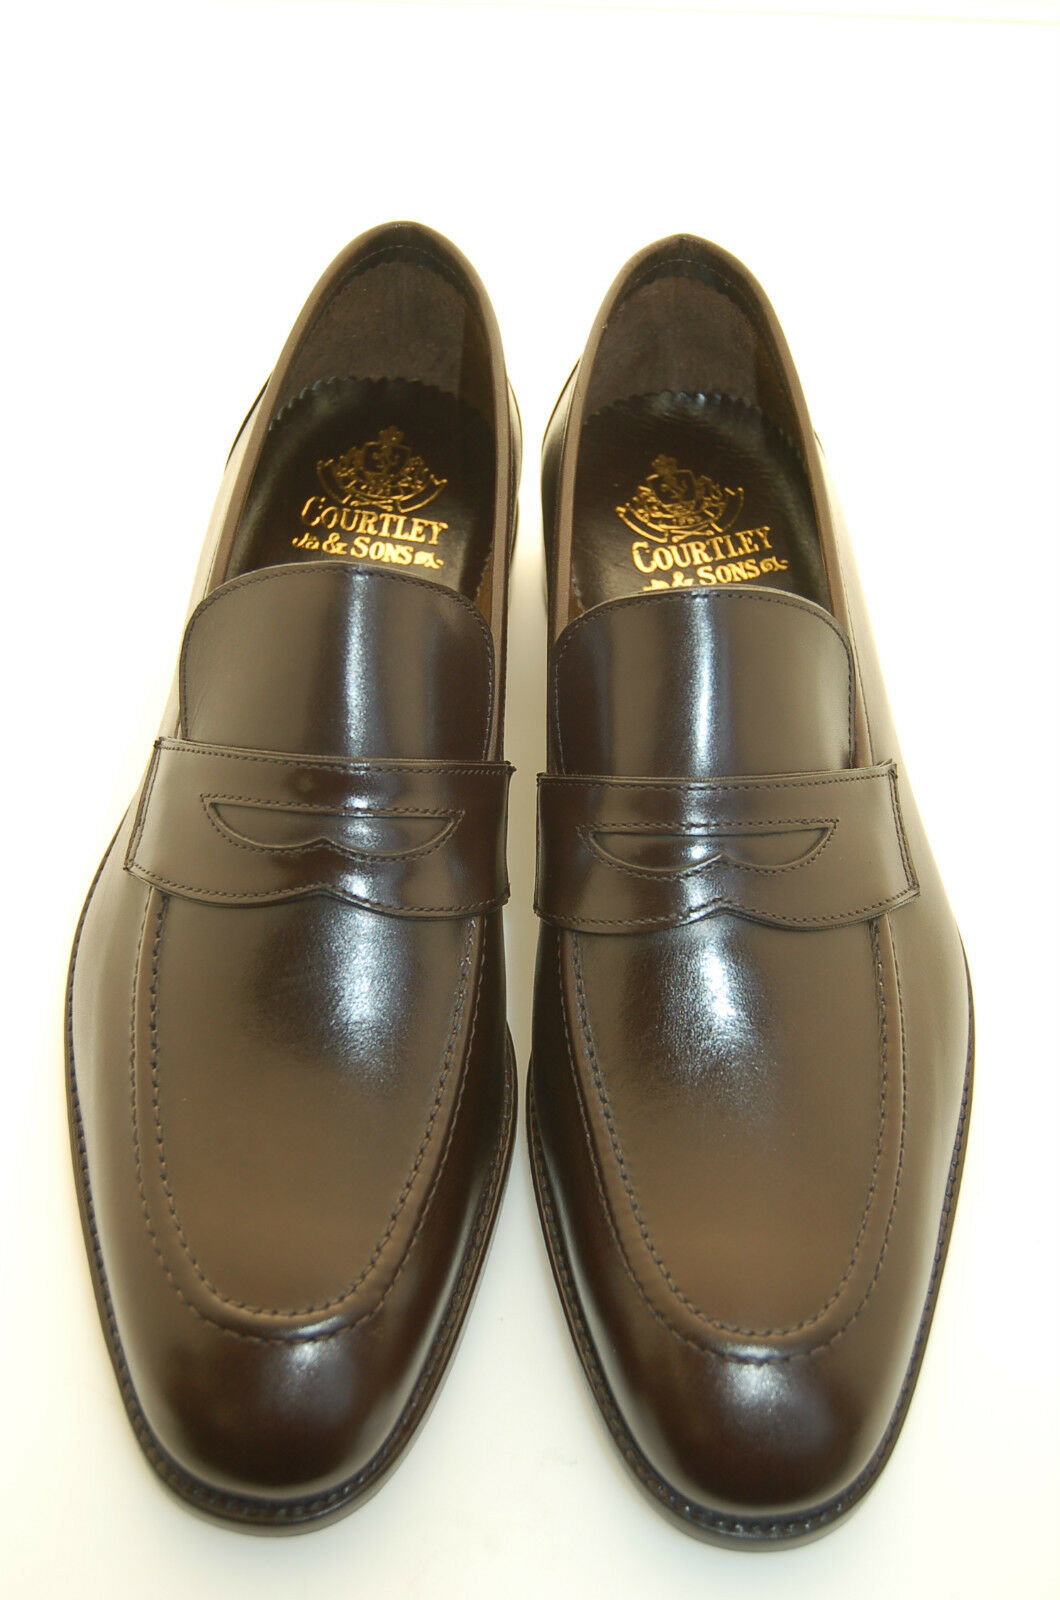 MAN - PENNY LOAFER-HEA BROWN CALF-MOCASSINO VITELLO black-LEATHER SOLE-BLAKE CSTN